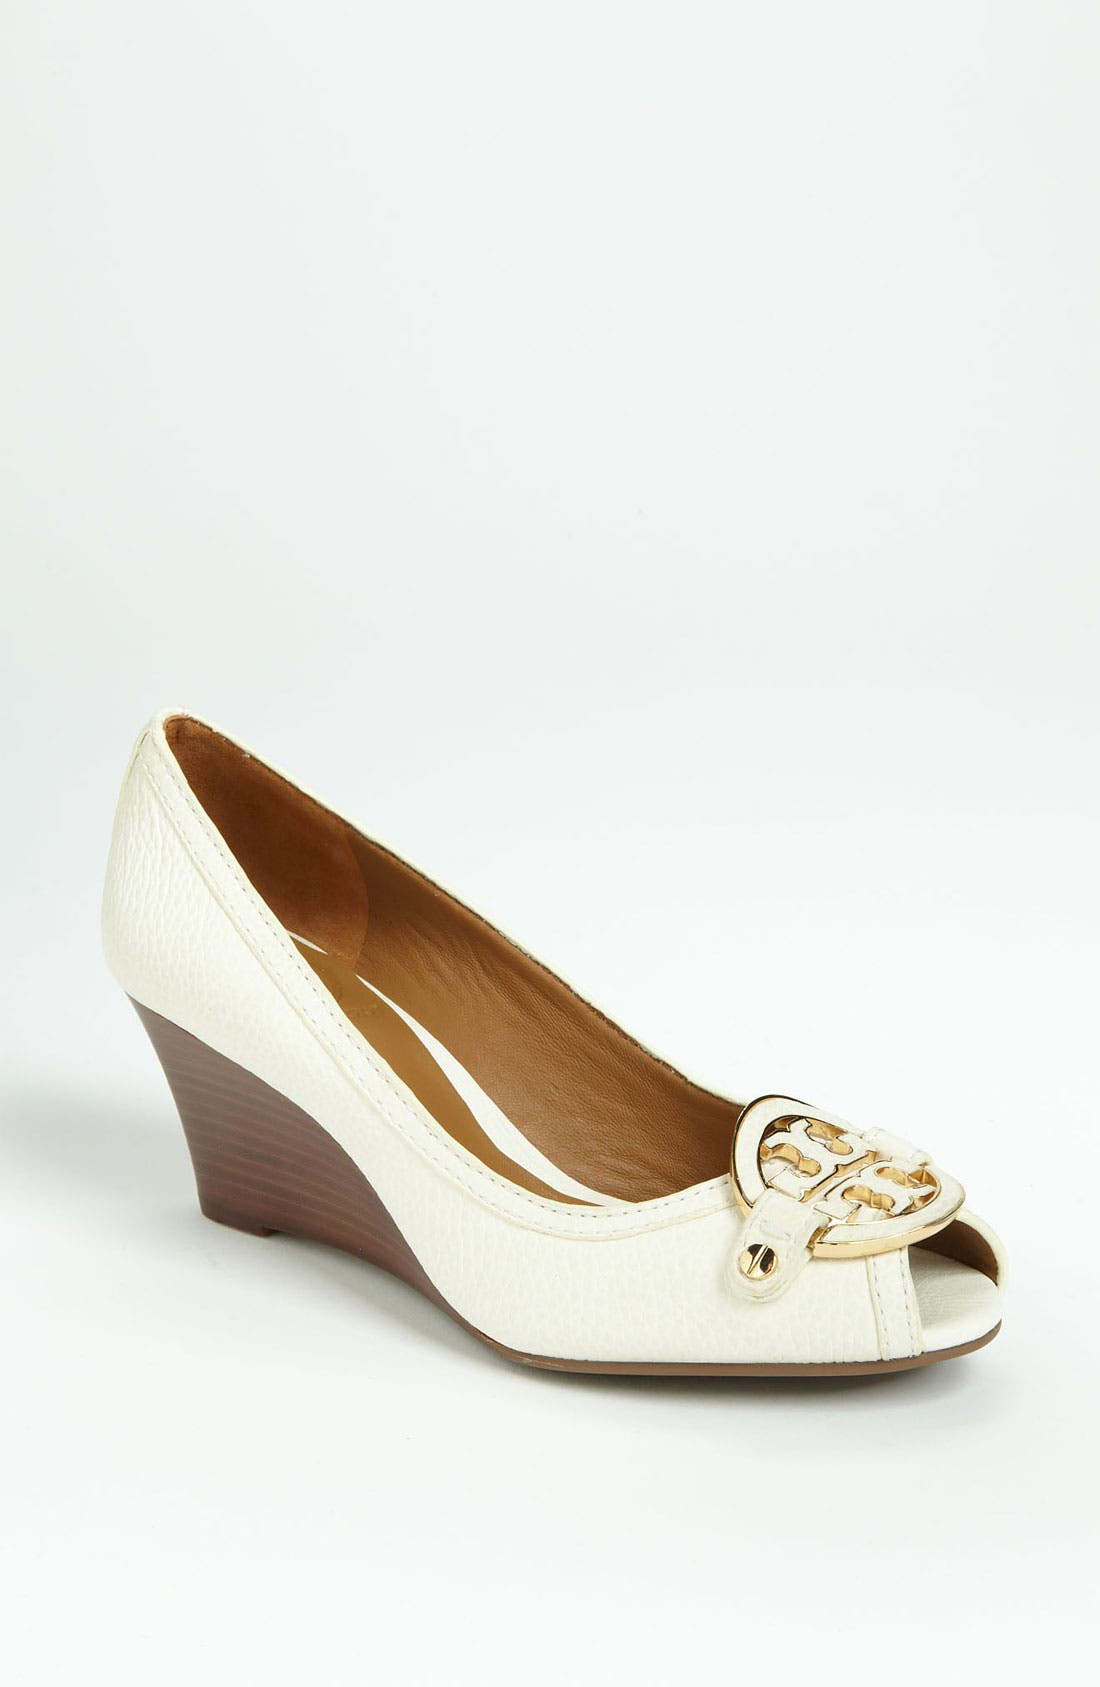 Alternate Image 1 Selected - Tory Burch 'Amanda' Pump